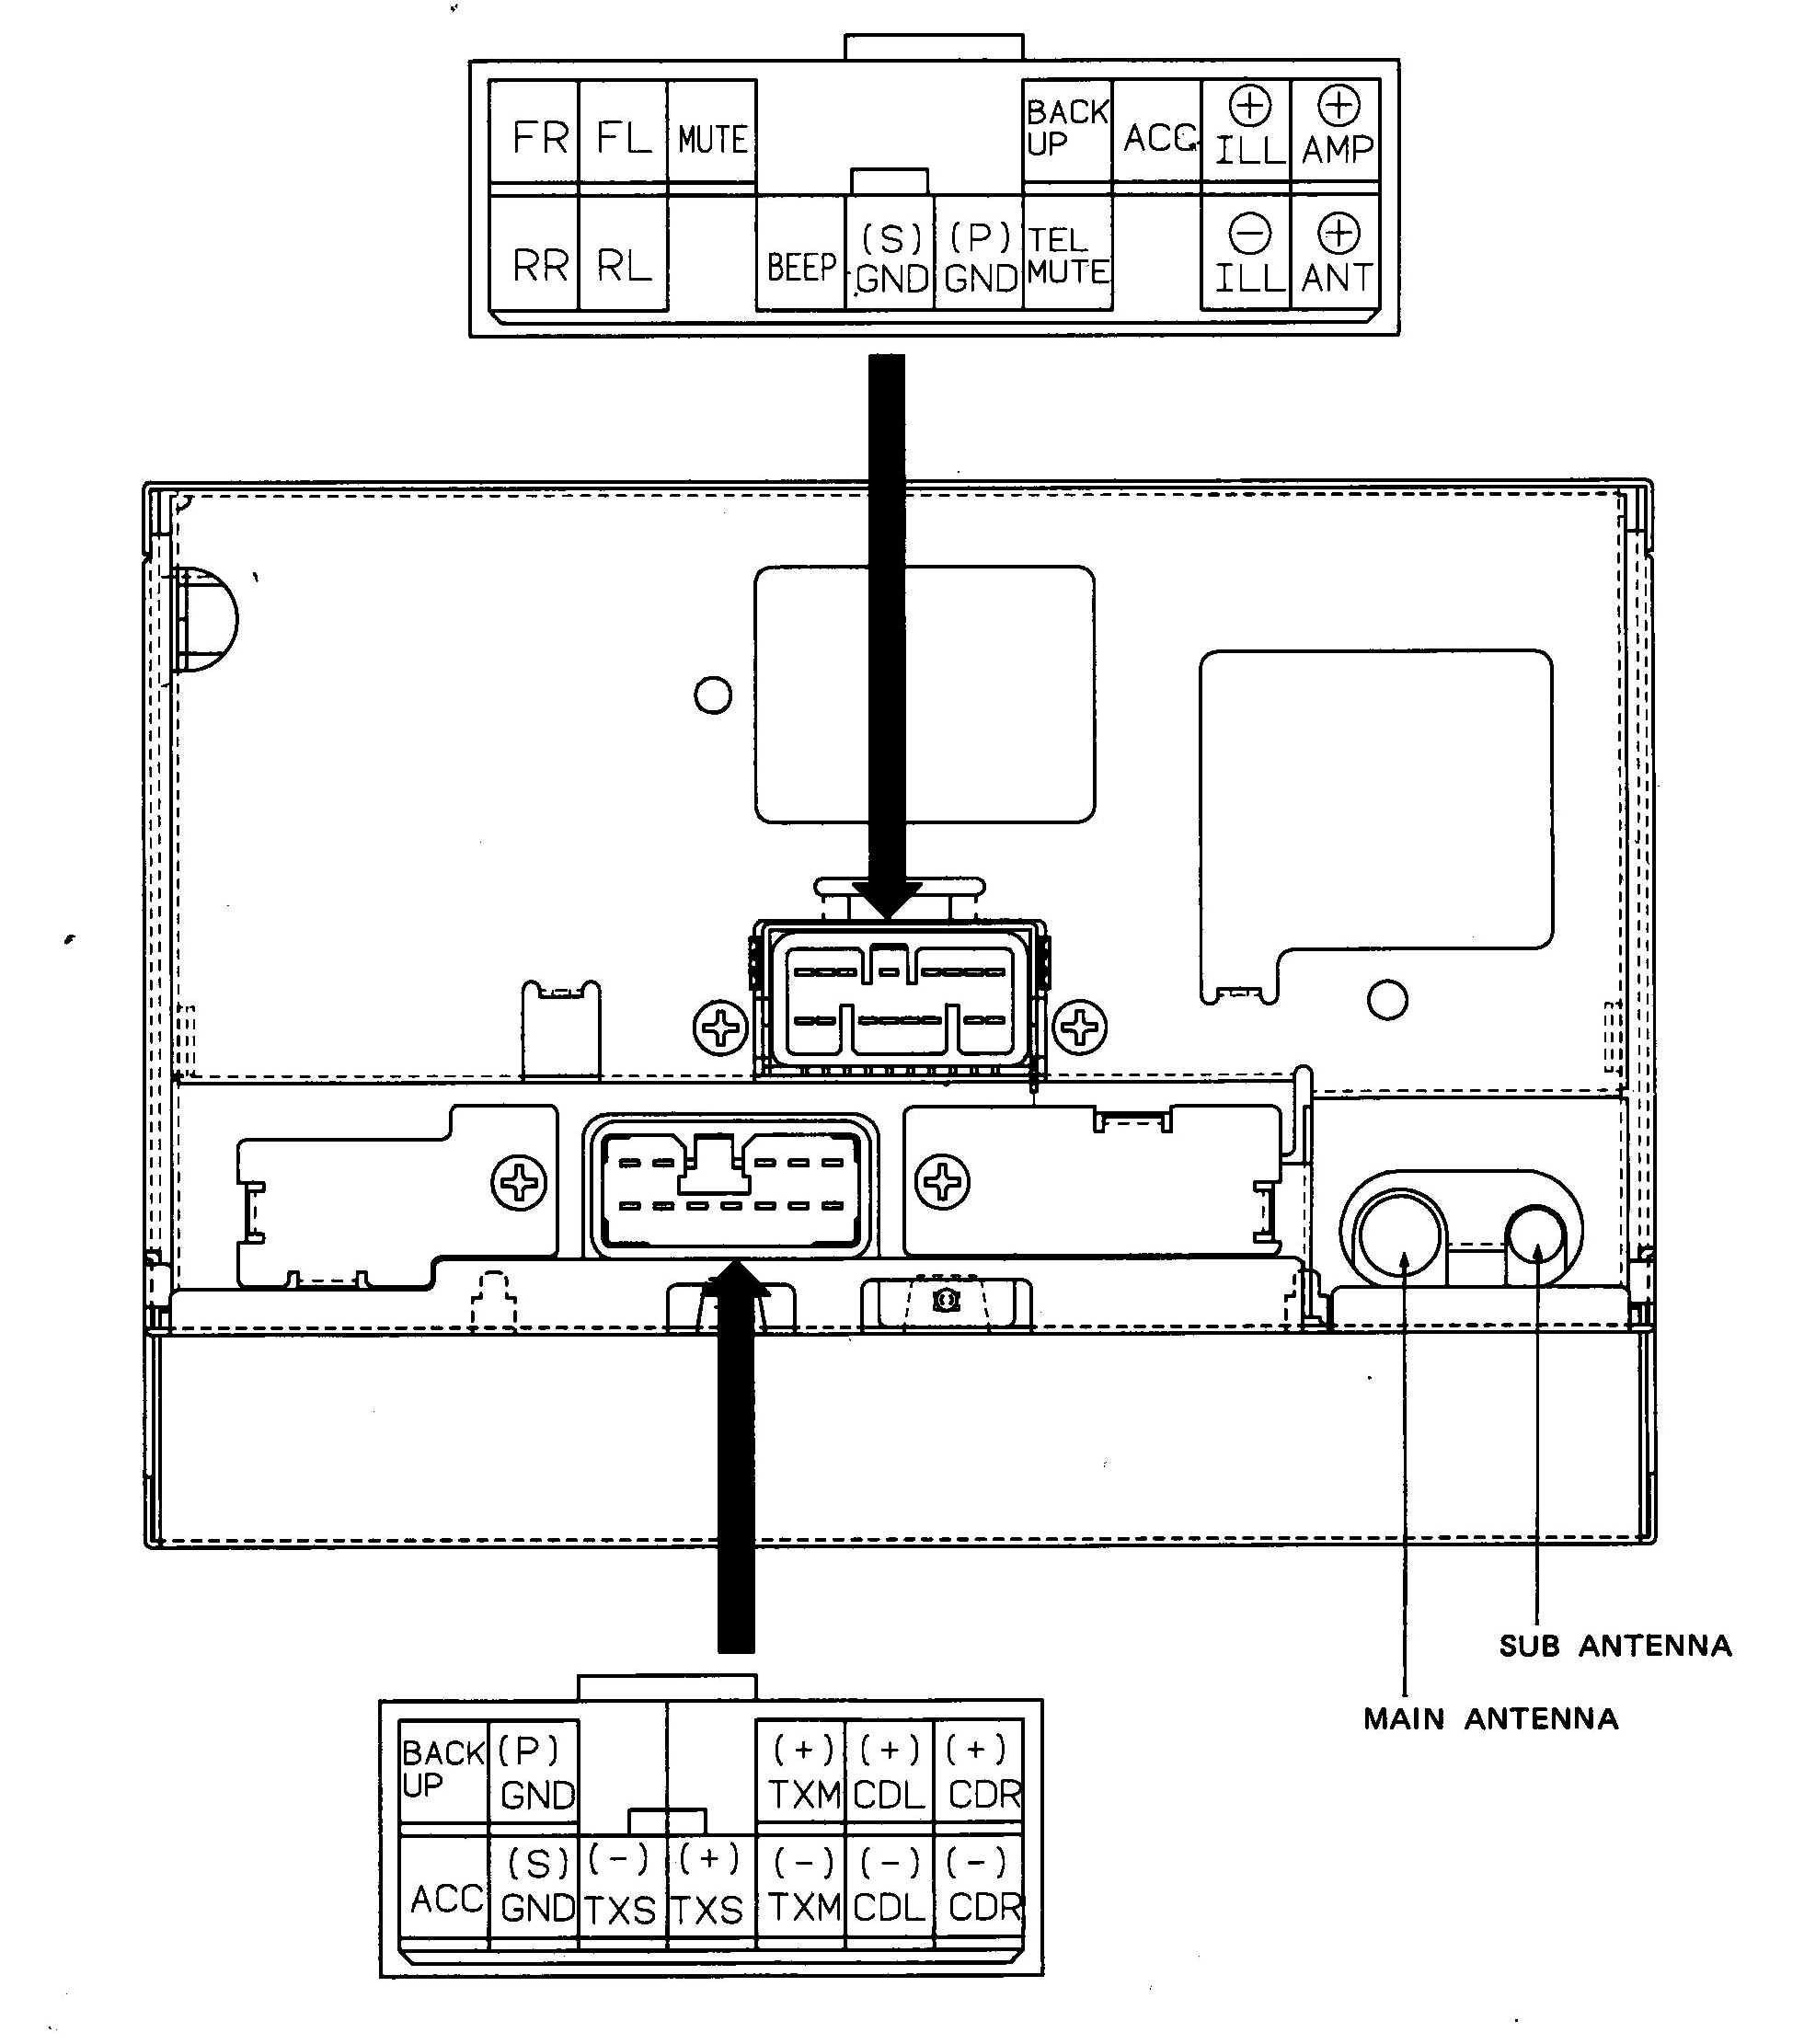 kenwood kdc wiring diagram wiring diagrams and schematics kenwood wiring diagram diagrams base kenwood kdc 138 instruction manual page 6